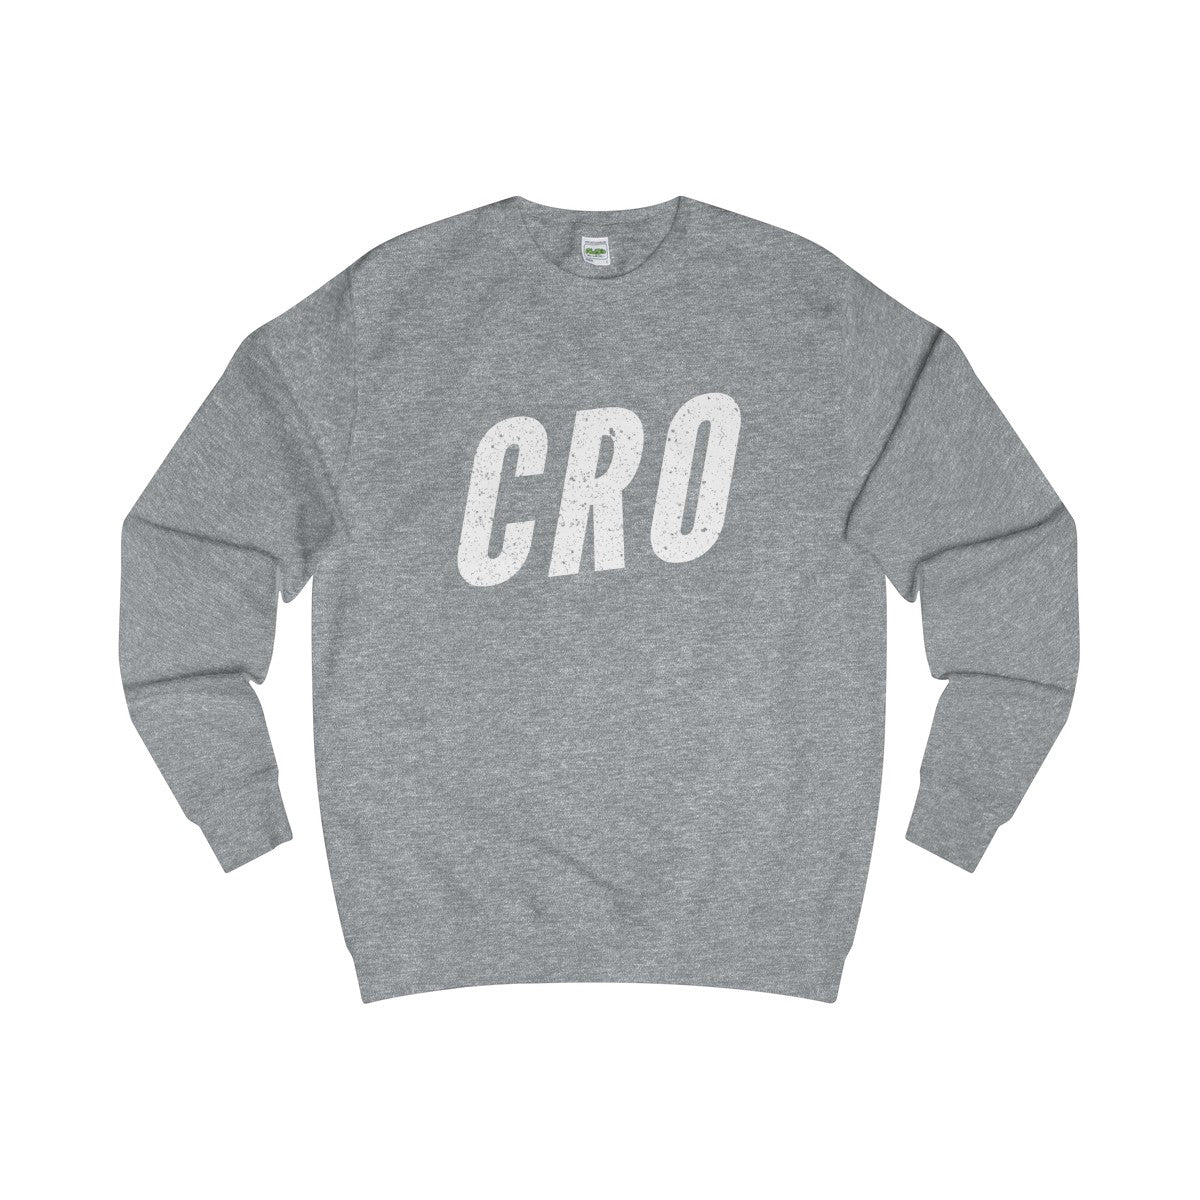 Croydon CR0 Sweater